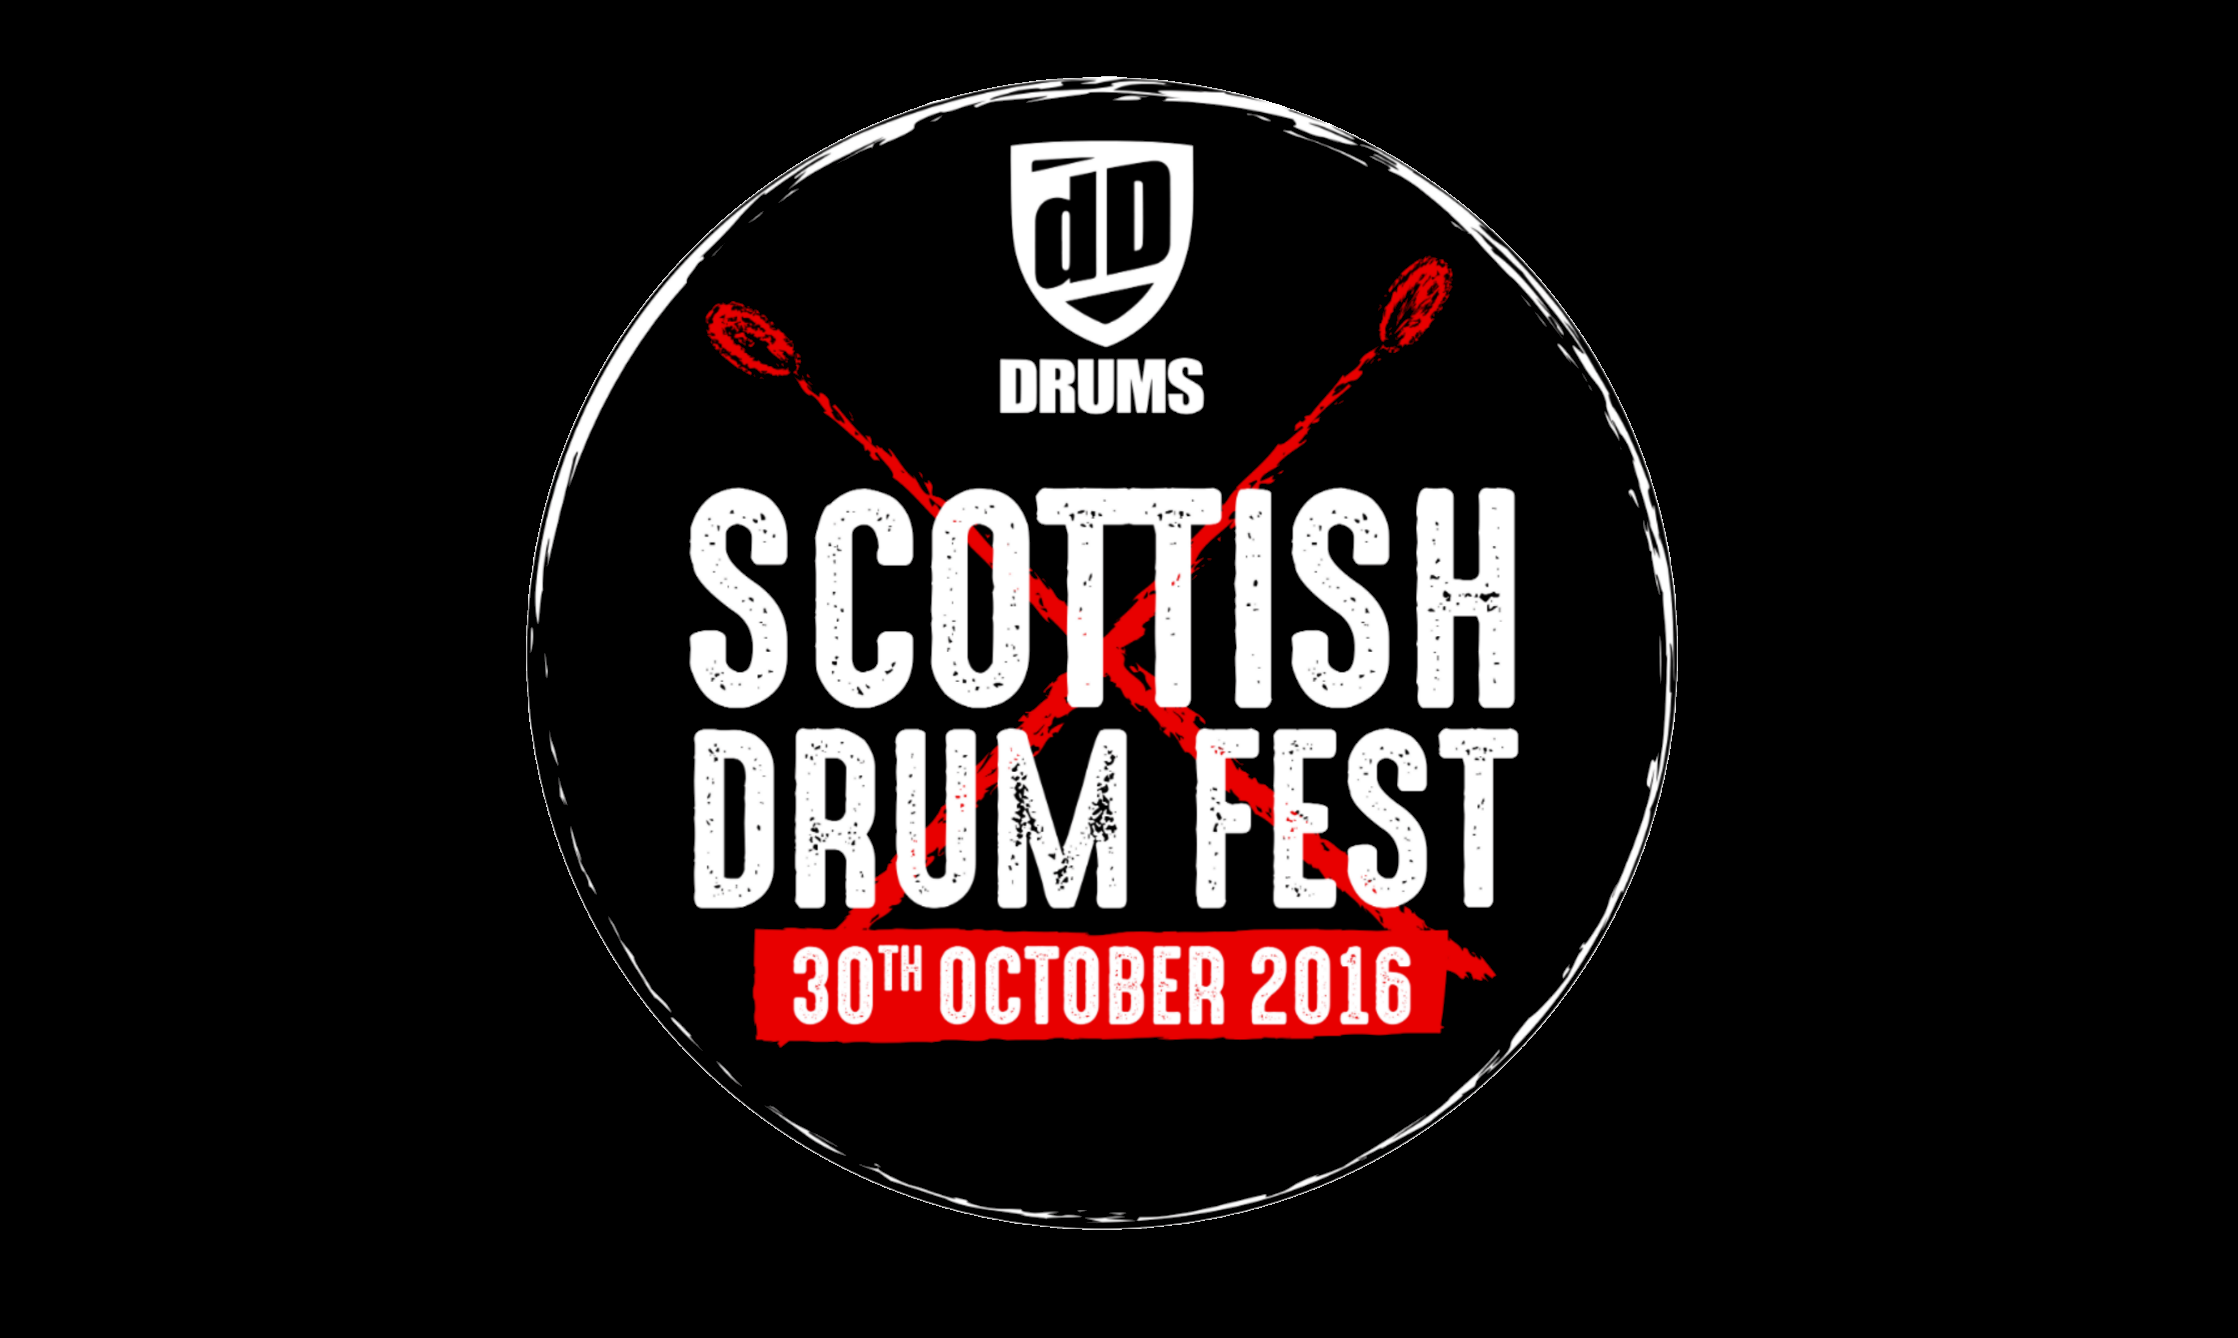 The Scottish Drum Fest 2016